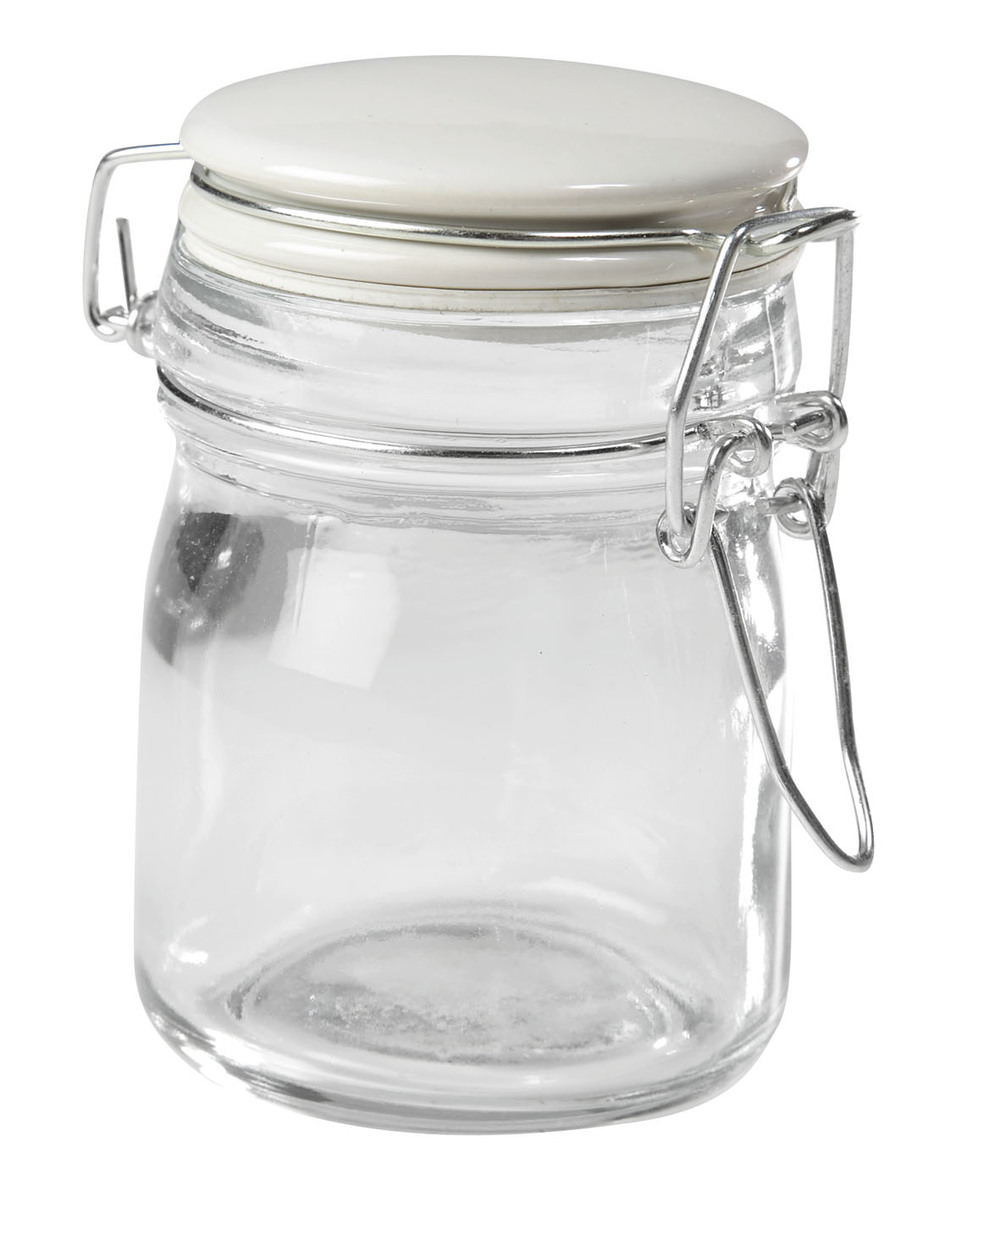 Strawbridge Storage Jar €3.75 Product Code: Comp-1619